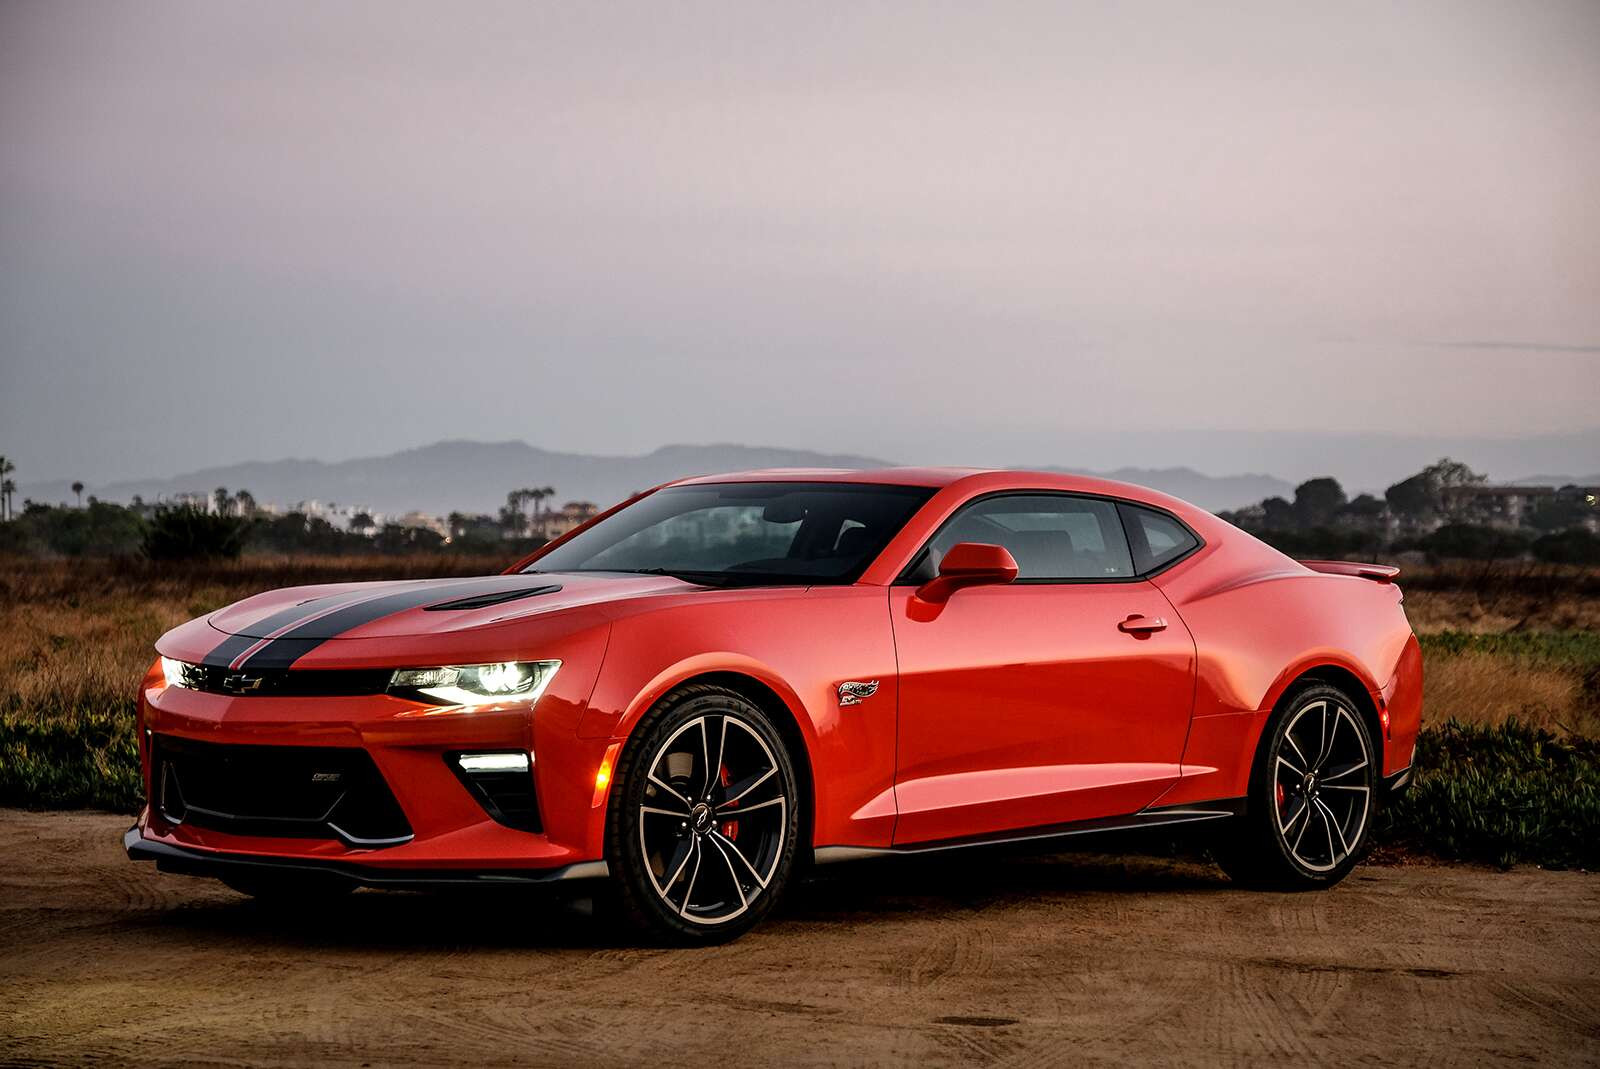 2018 chevrolet camaro ss hot wheels edition review: solid muscle car